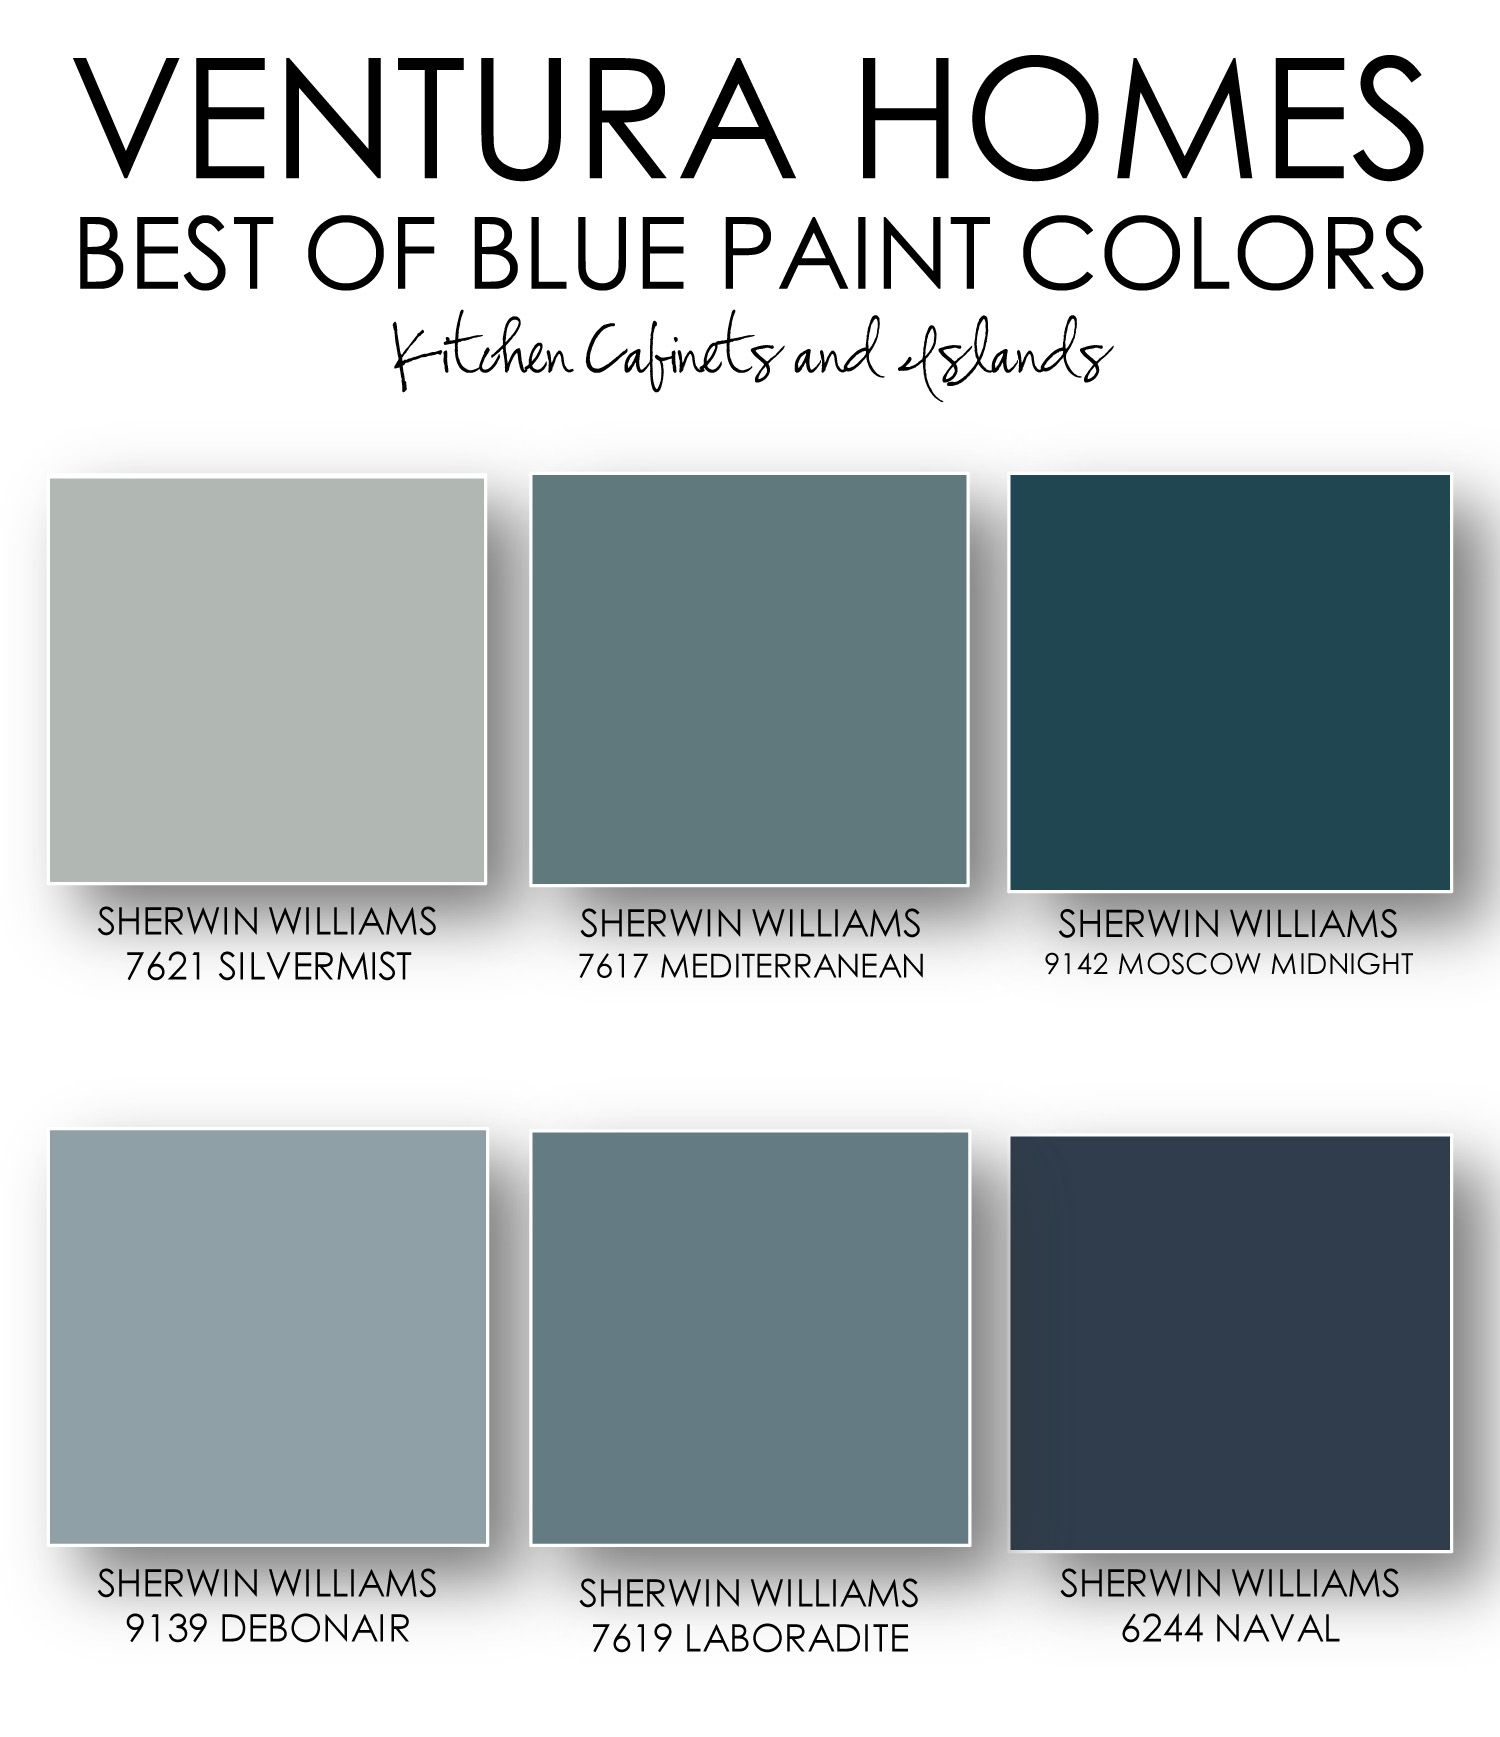 Venturahomestx Curated This Collection Of The Best Blue Paints For Cabinets And Islands Featuring Moscow Midnight Sw 9142 Naval 6244 More